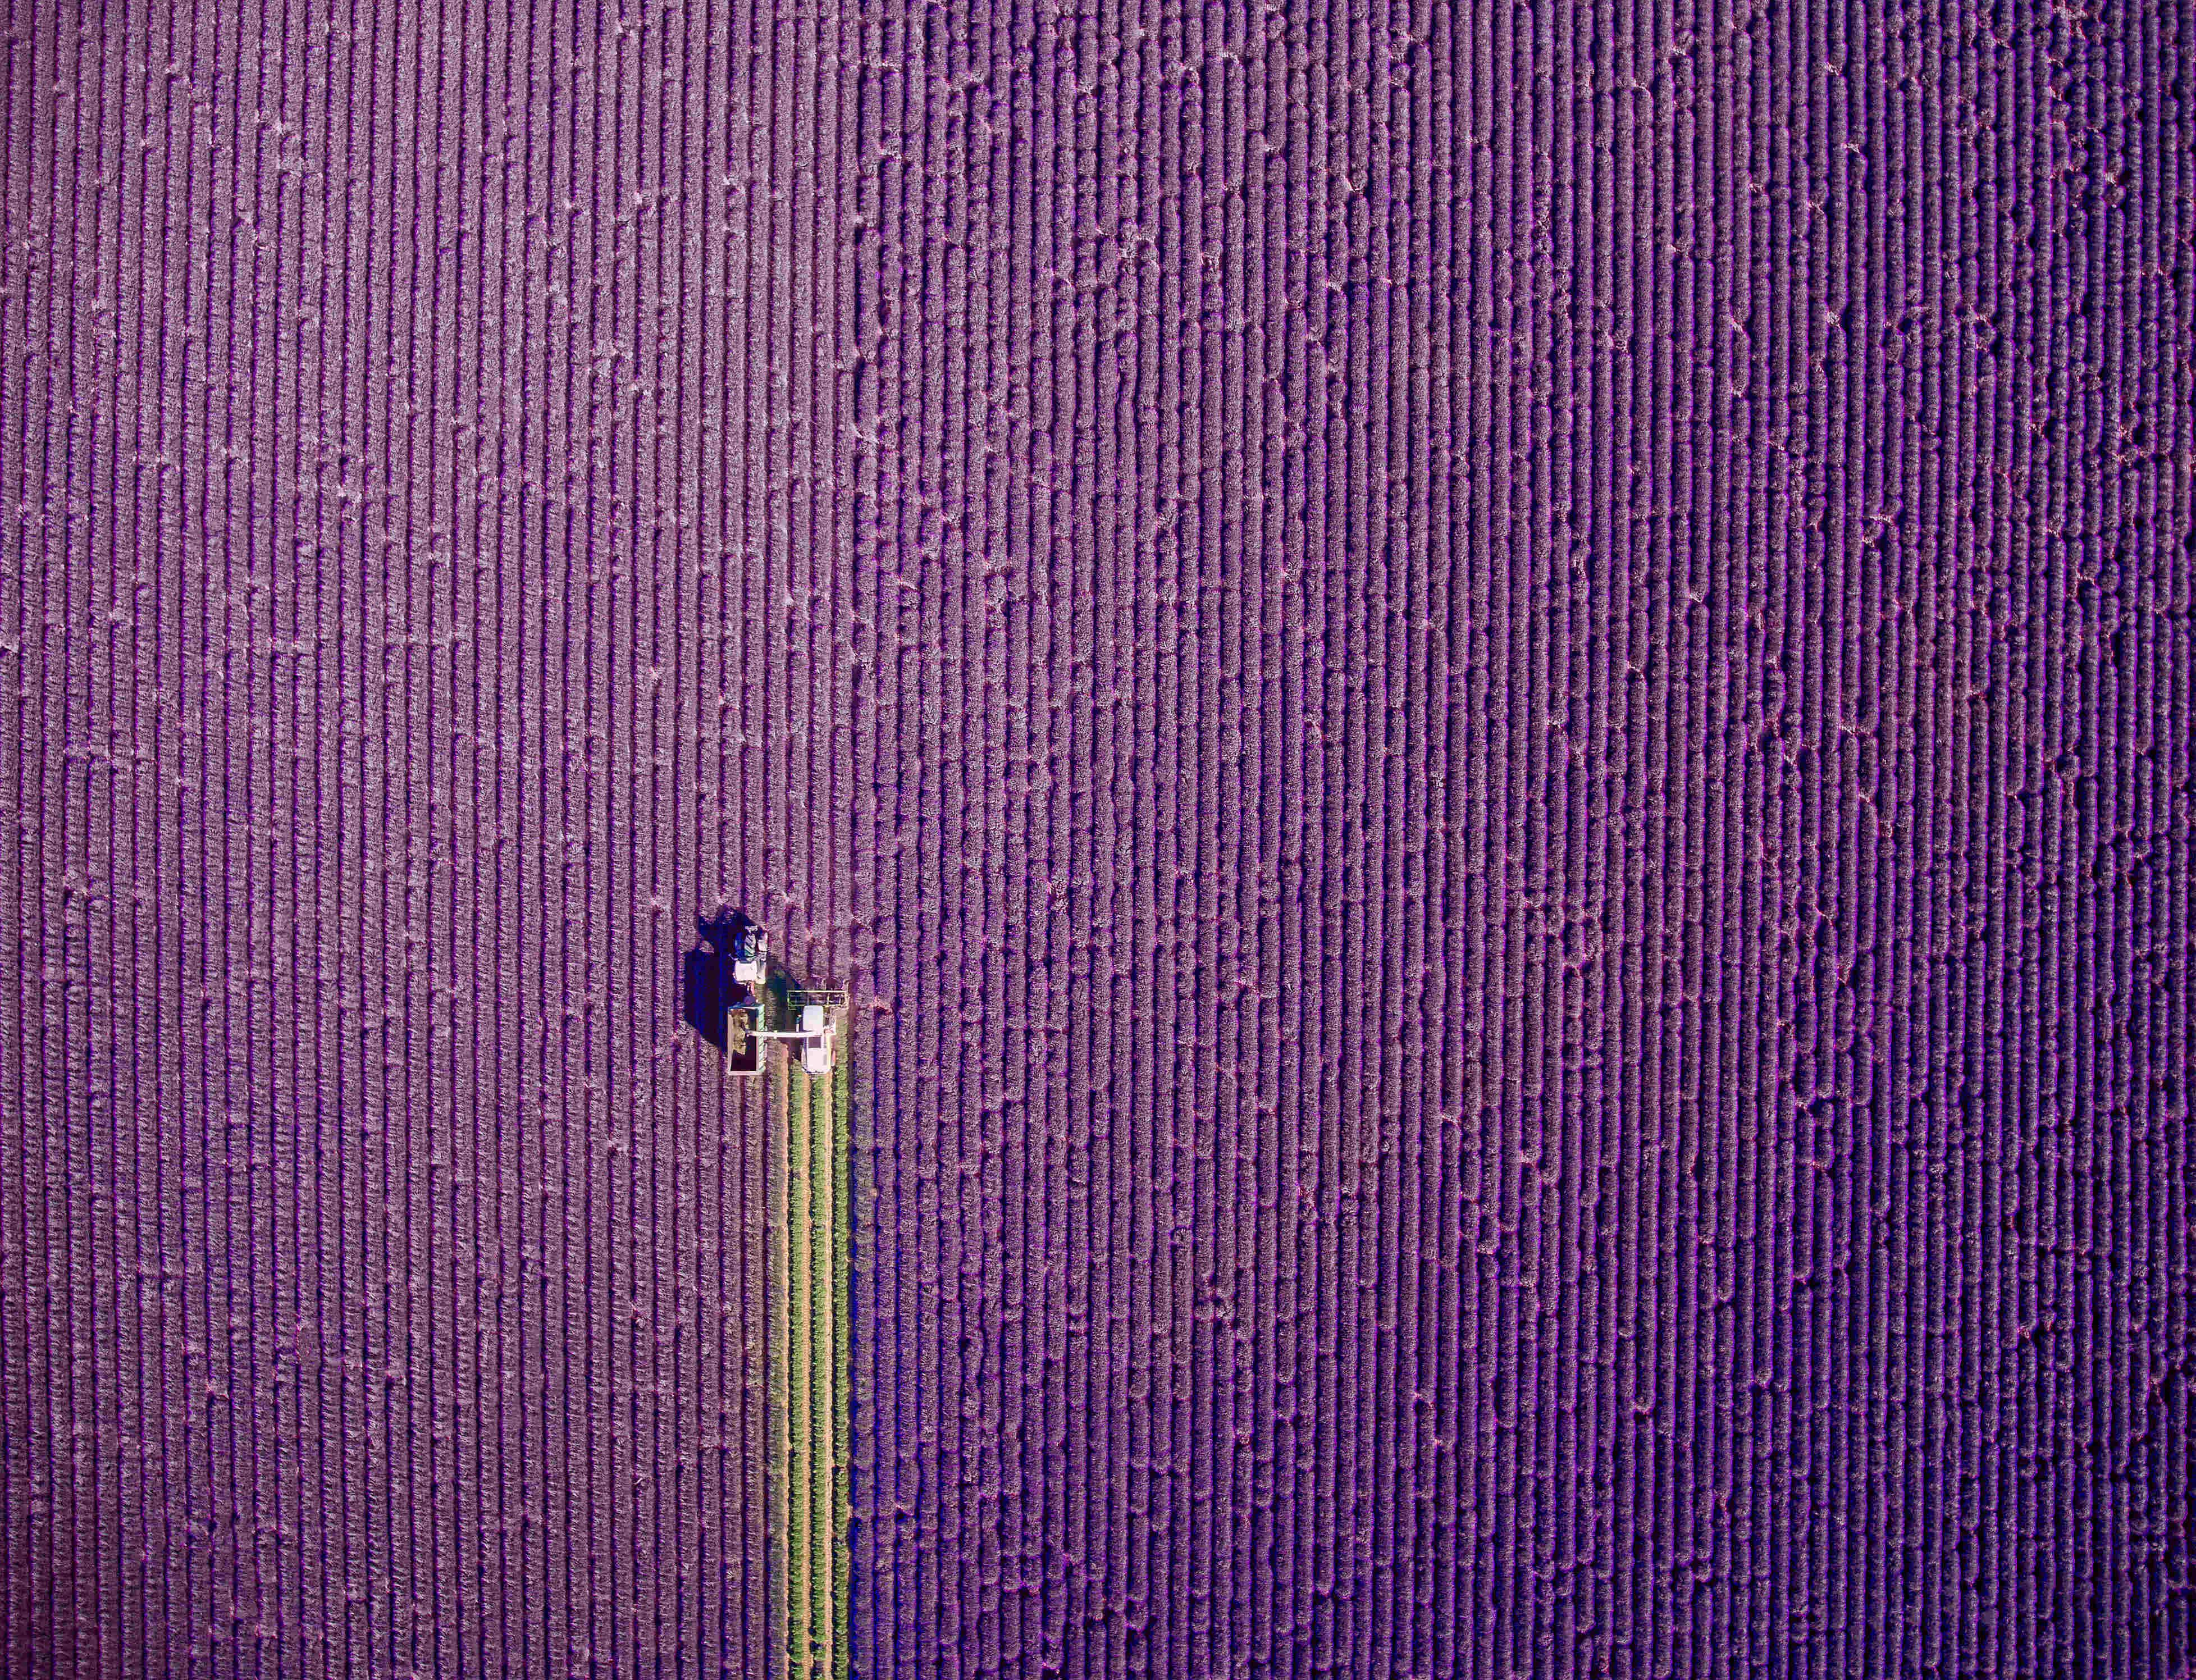 These award-winning drone photographs are sure to fuel your wanderlust